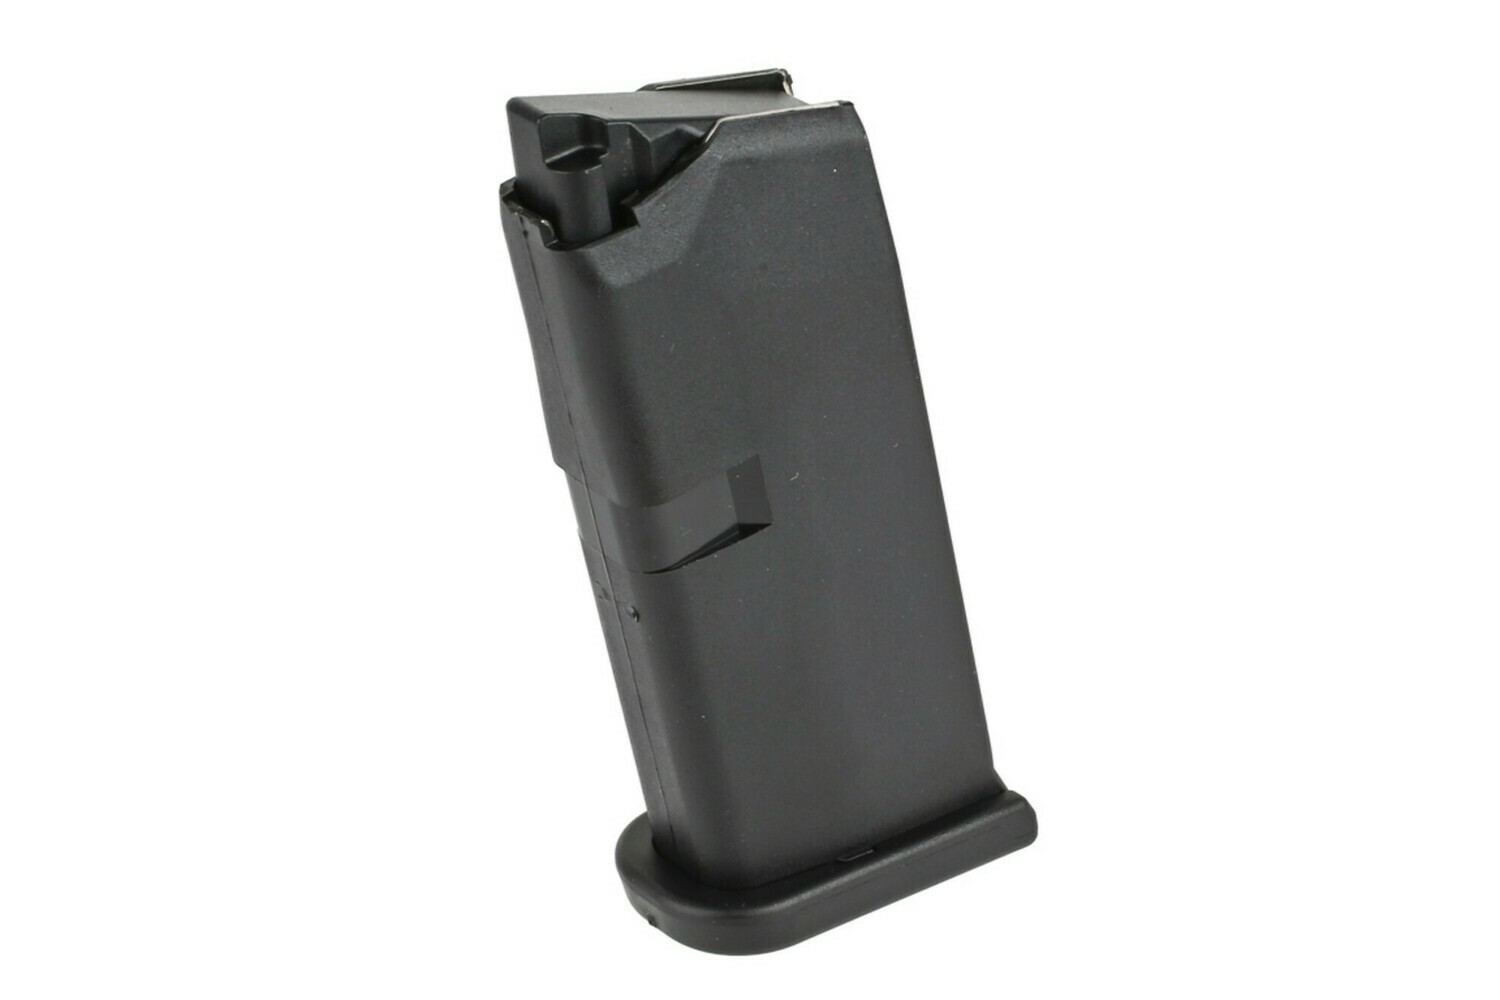 Glock OEM 43 9mm 6-Round Factory Magazine